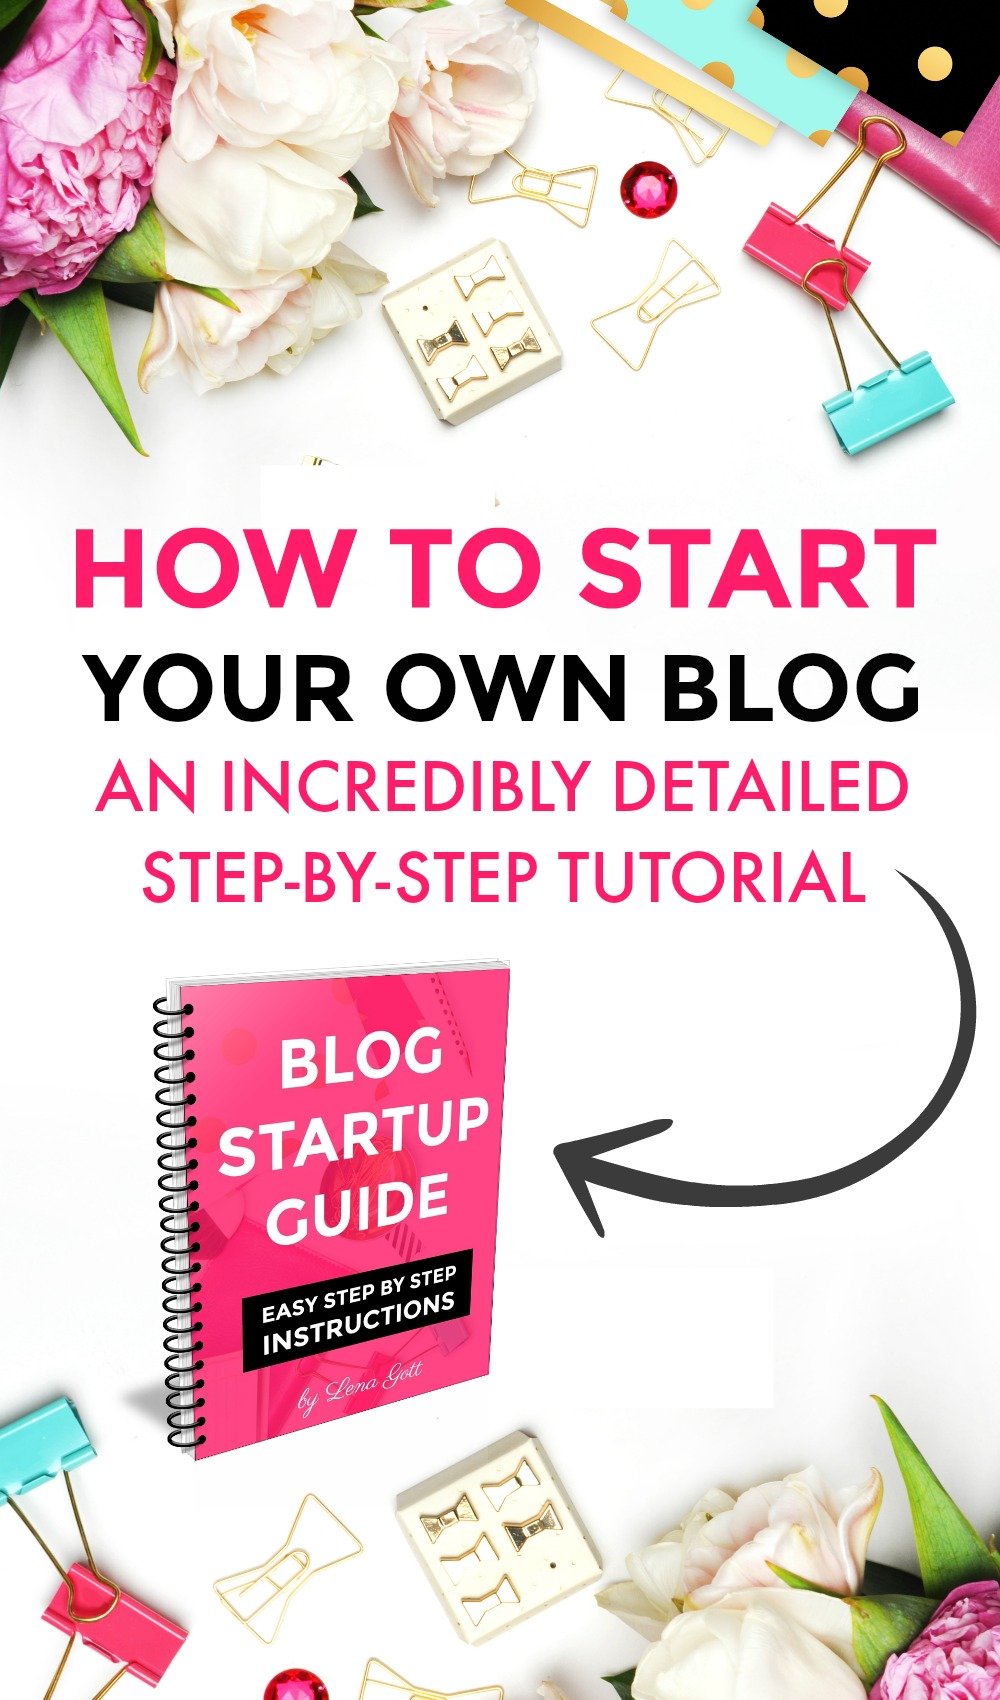 Leading up to the first hours of starting your blog, there are certain things you don't want to forget! You'll need to make sure you follow certain steps, especially when it comes to choosing the right domain name (URL) and social media handles. This step-by-step detailed blog tutorial from WhatMommyDoes covers all the little things you need to know! | Get a free copy of the Start a Blog Bootcamp ($25 value) when you start your blog using her links.